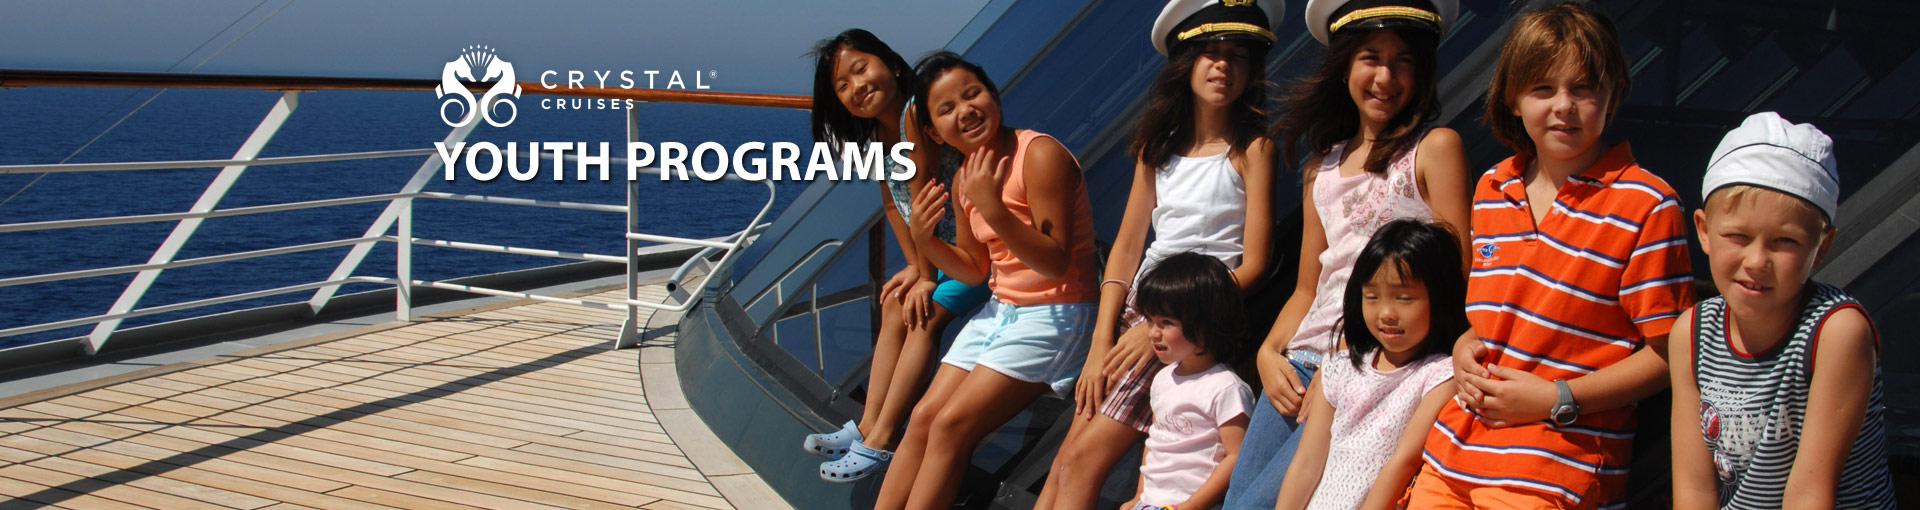 Crystal Cruises Youth Programs